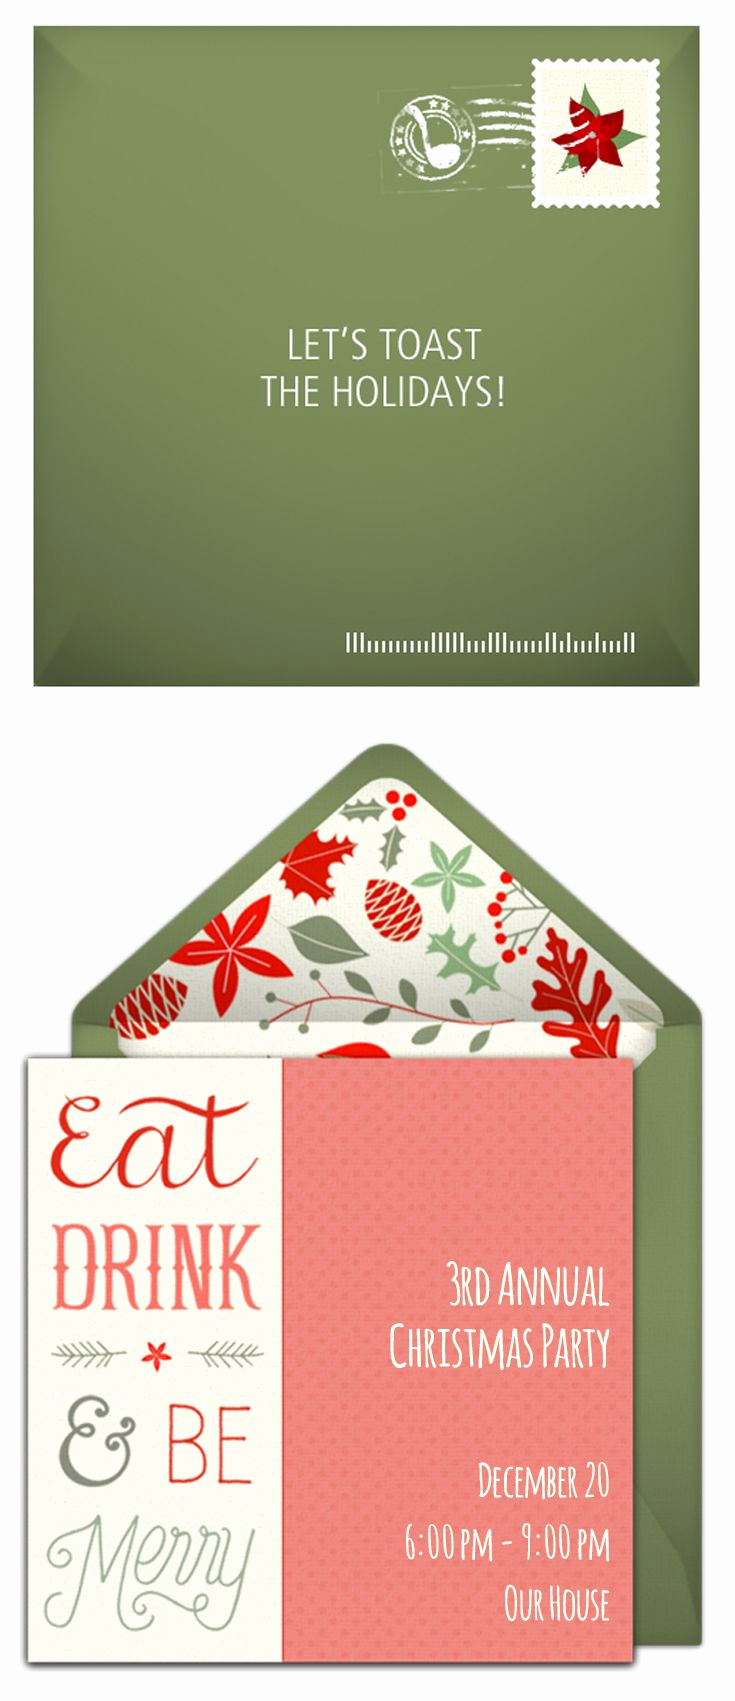 Office Holiday Party Invitation Wording Unique Best 25 Christmas Invitation Wording Ideas On Pinterest